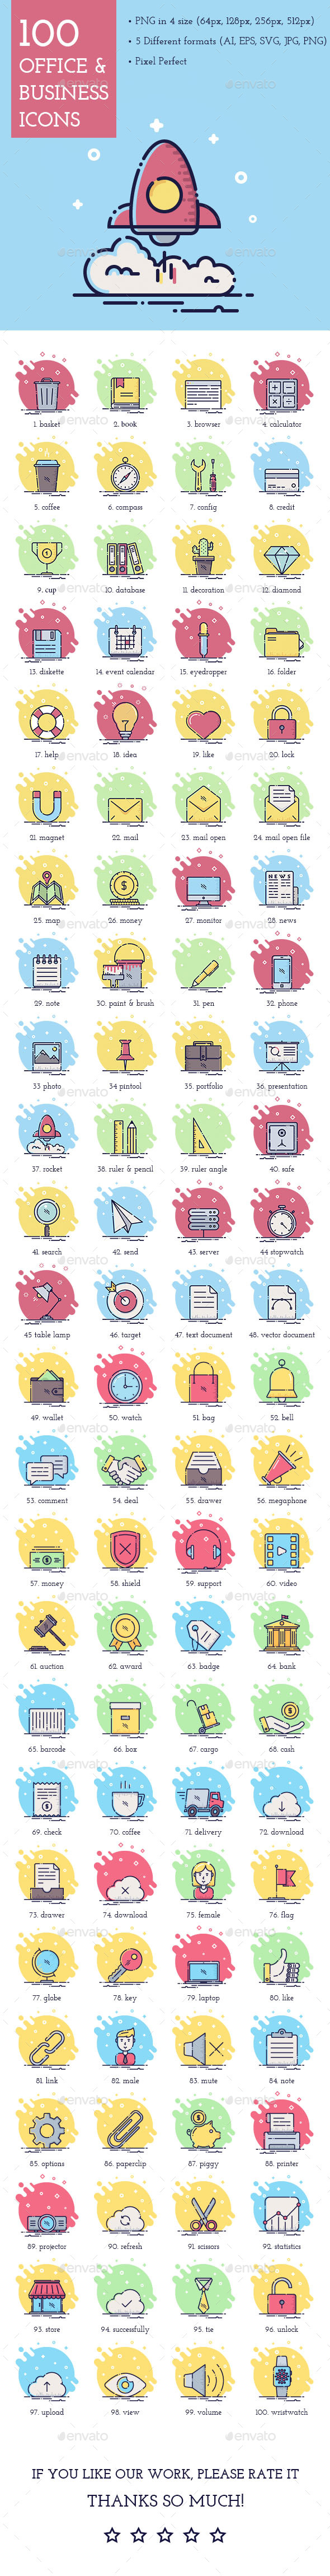 100 Office & Business Icons - Business Icons